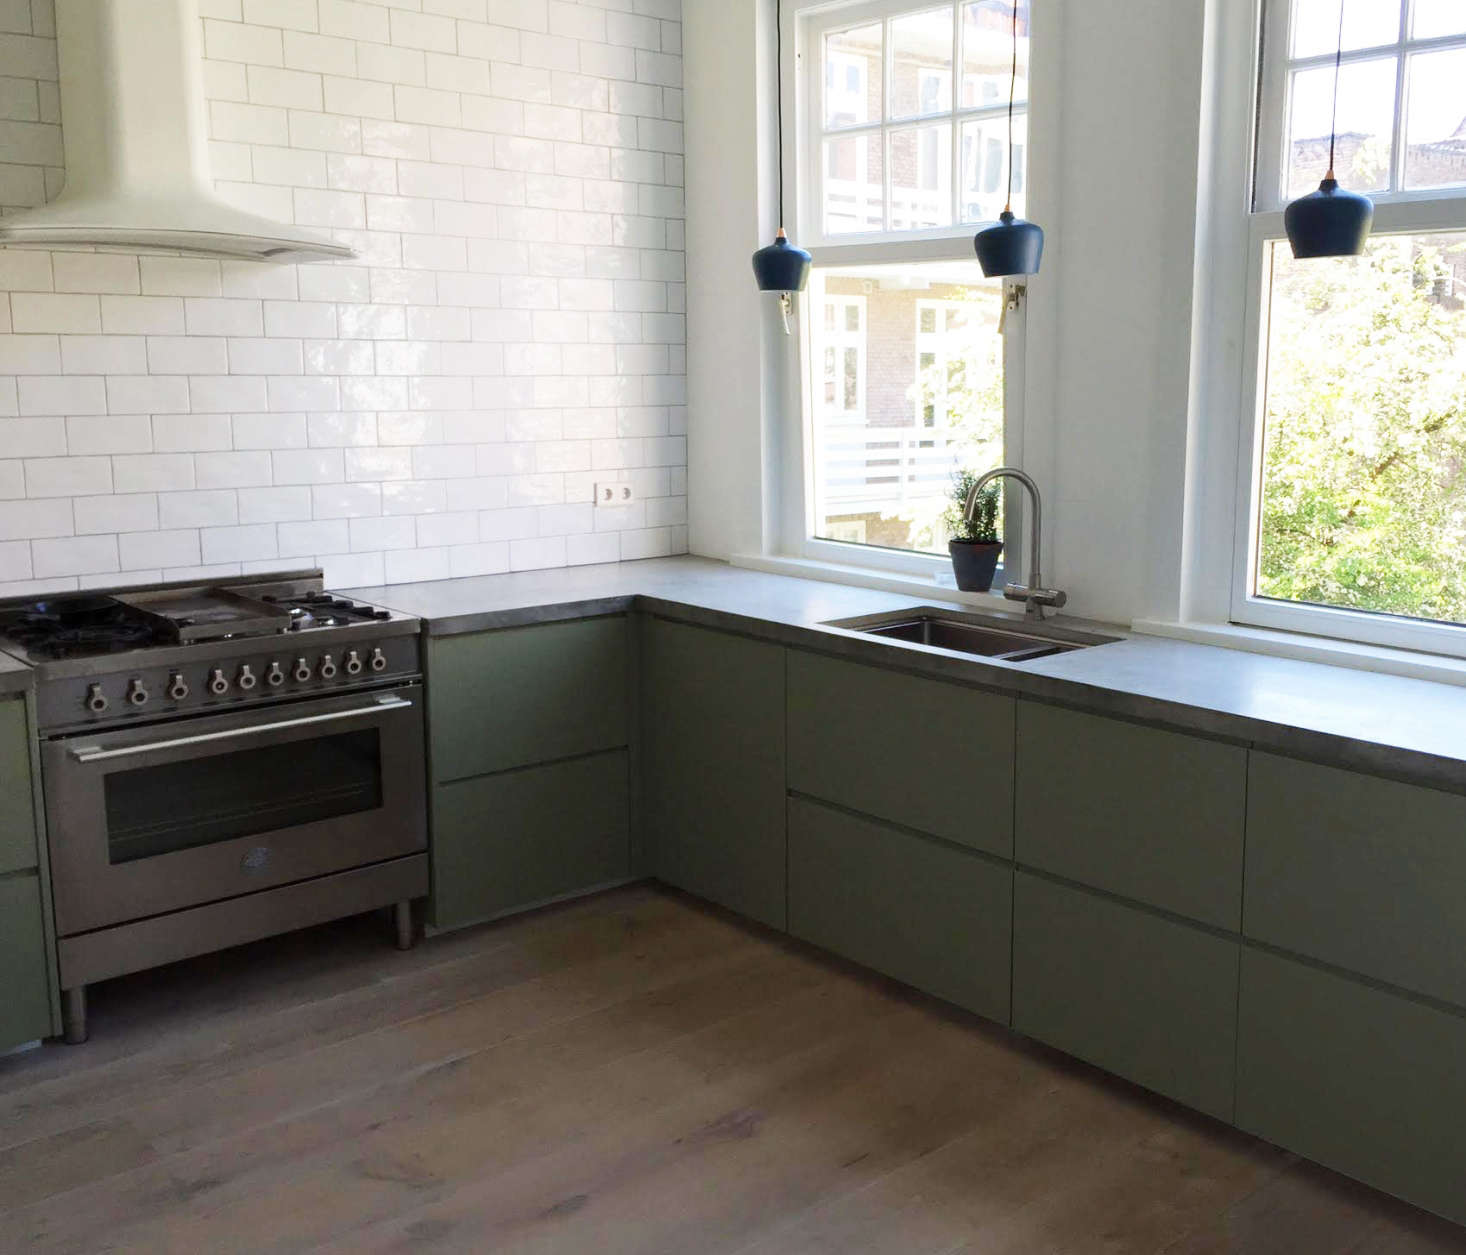 kitchen cabinet company work shoes remodeling 101 a guide to the only 6 styles you flat front cabinets with recessed pulls from koak design read